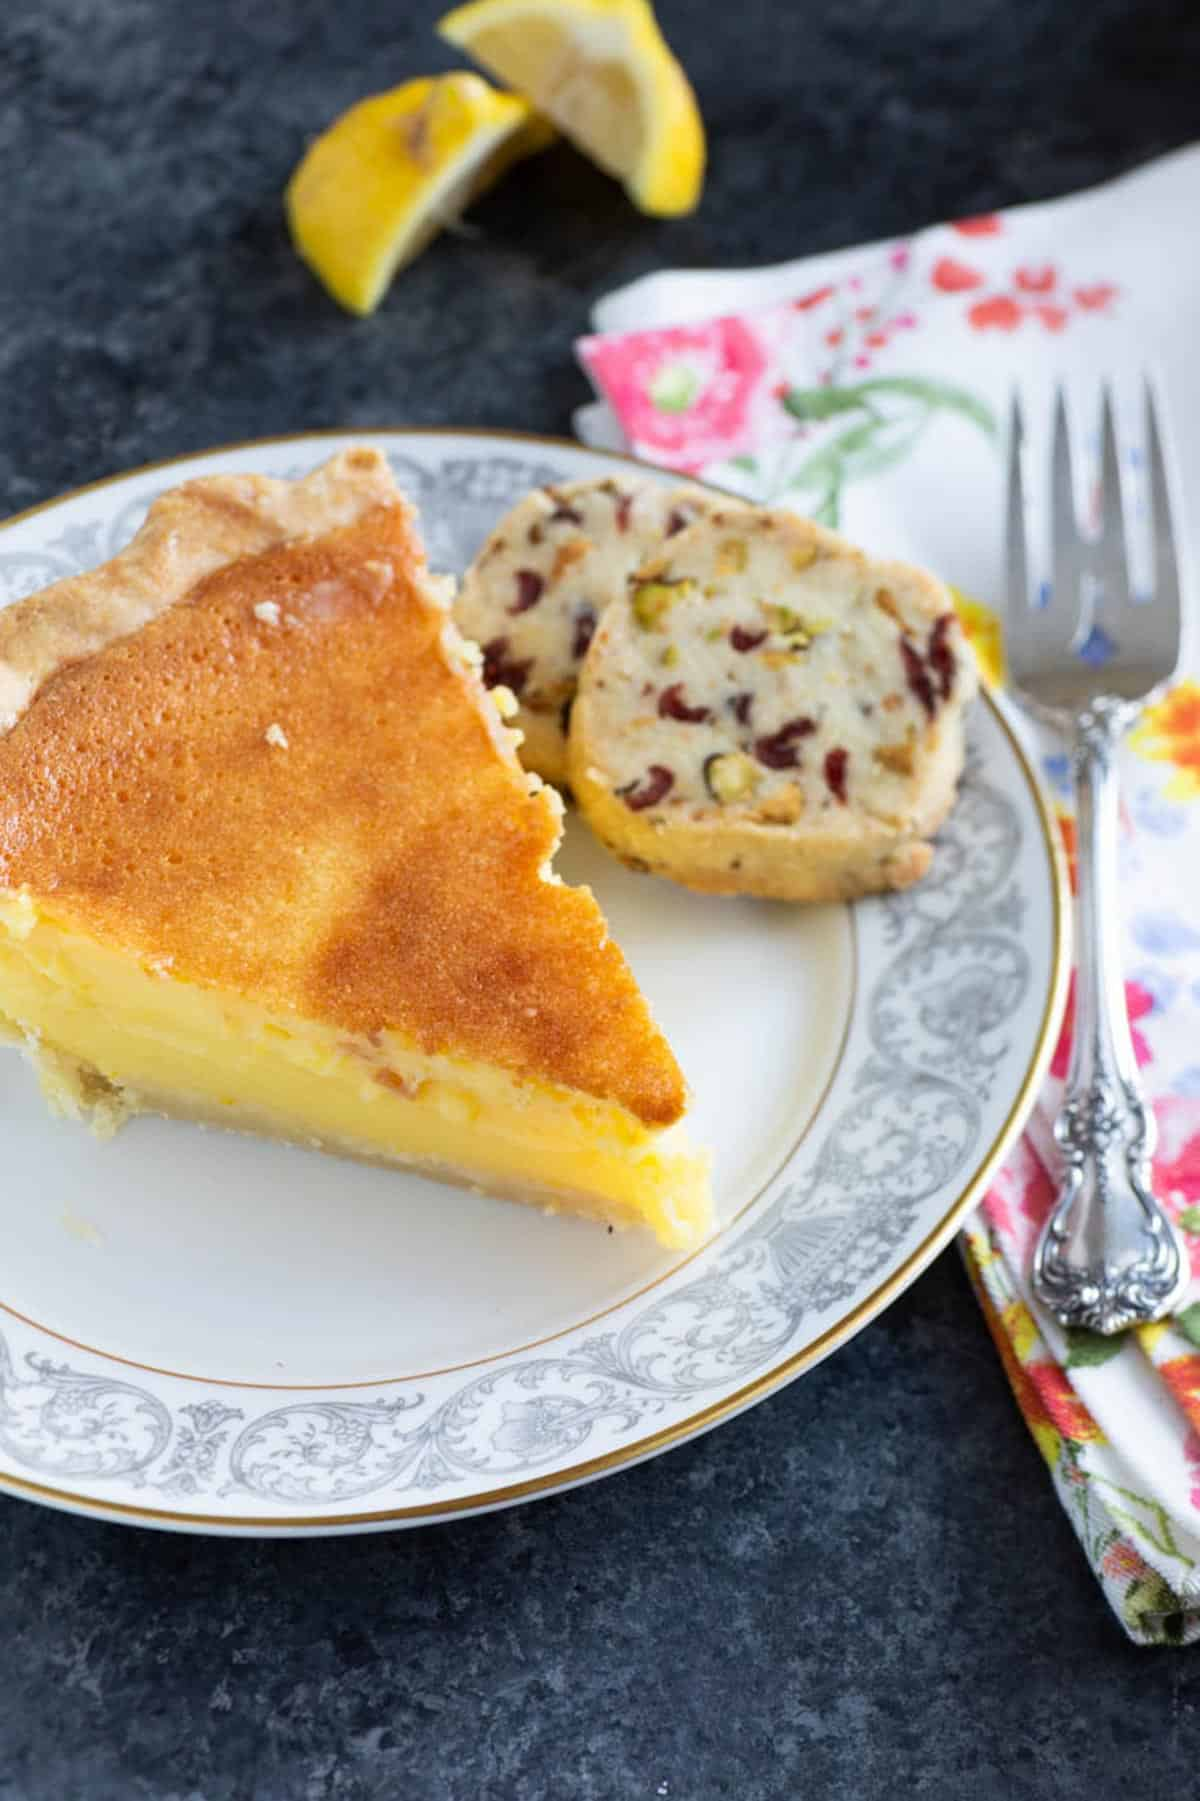 A slice of lemon chess pie with a shortbread cookie on a plate.